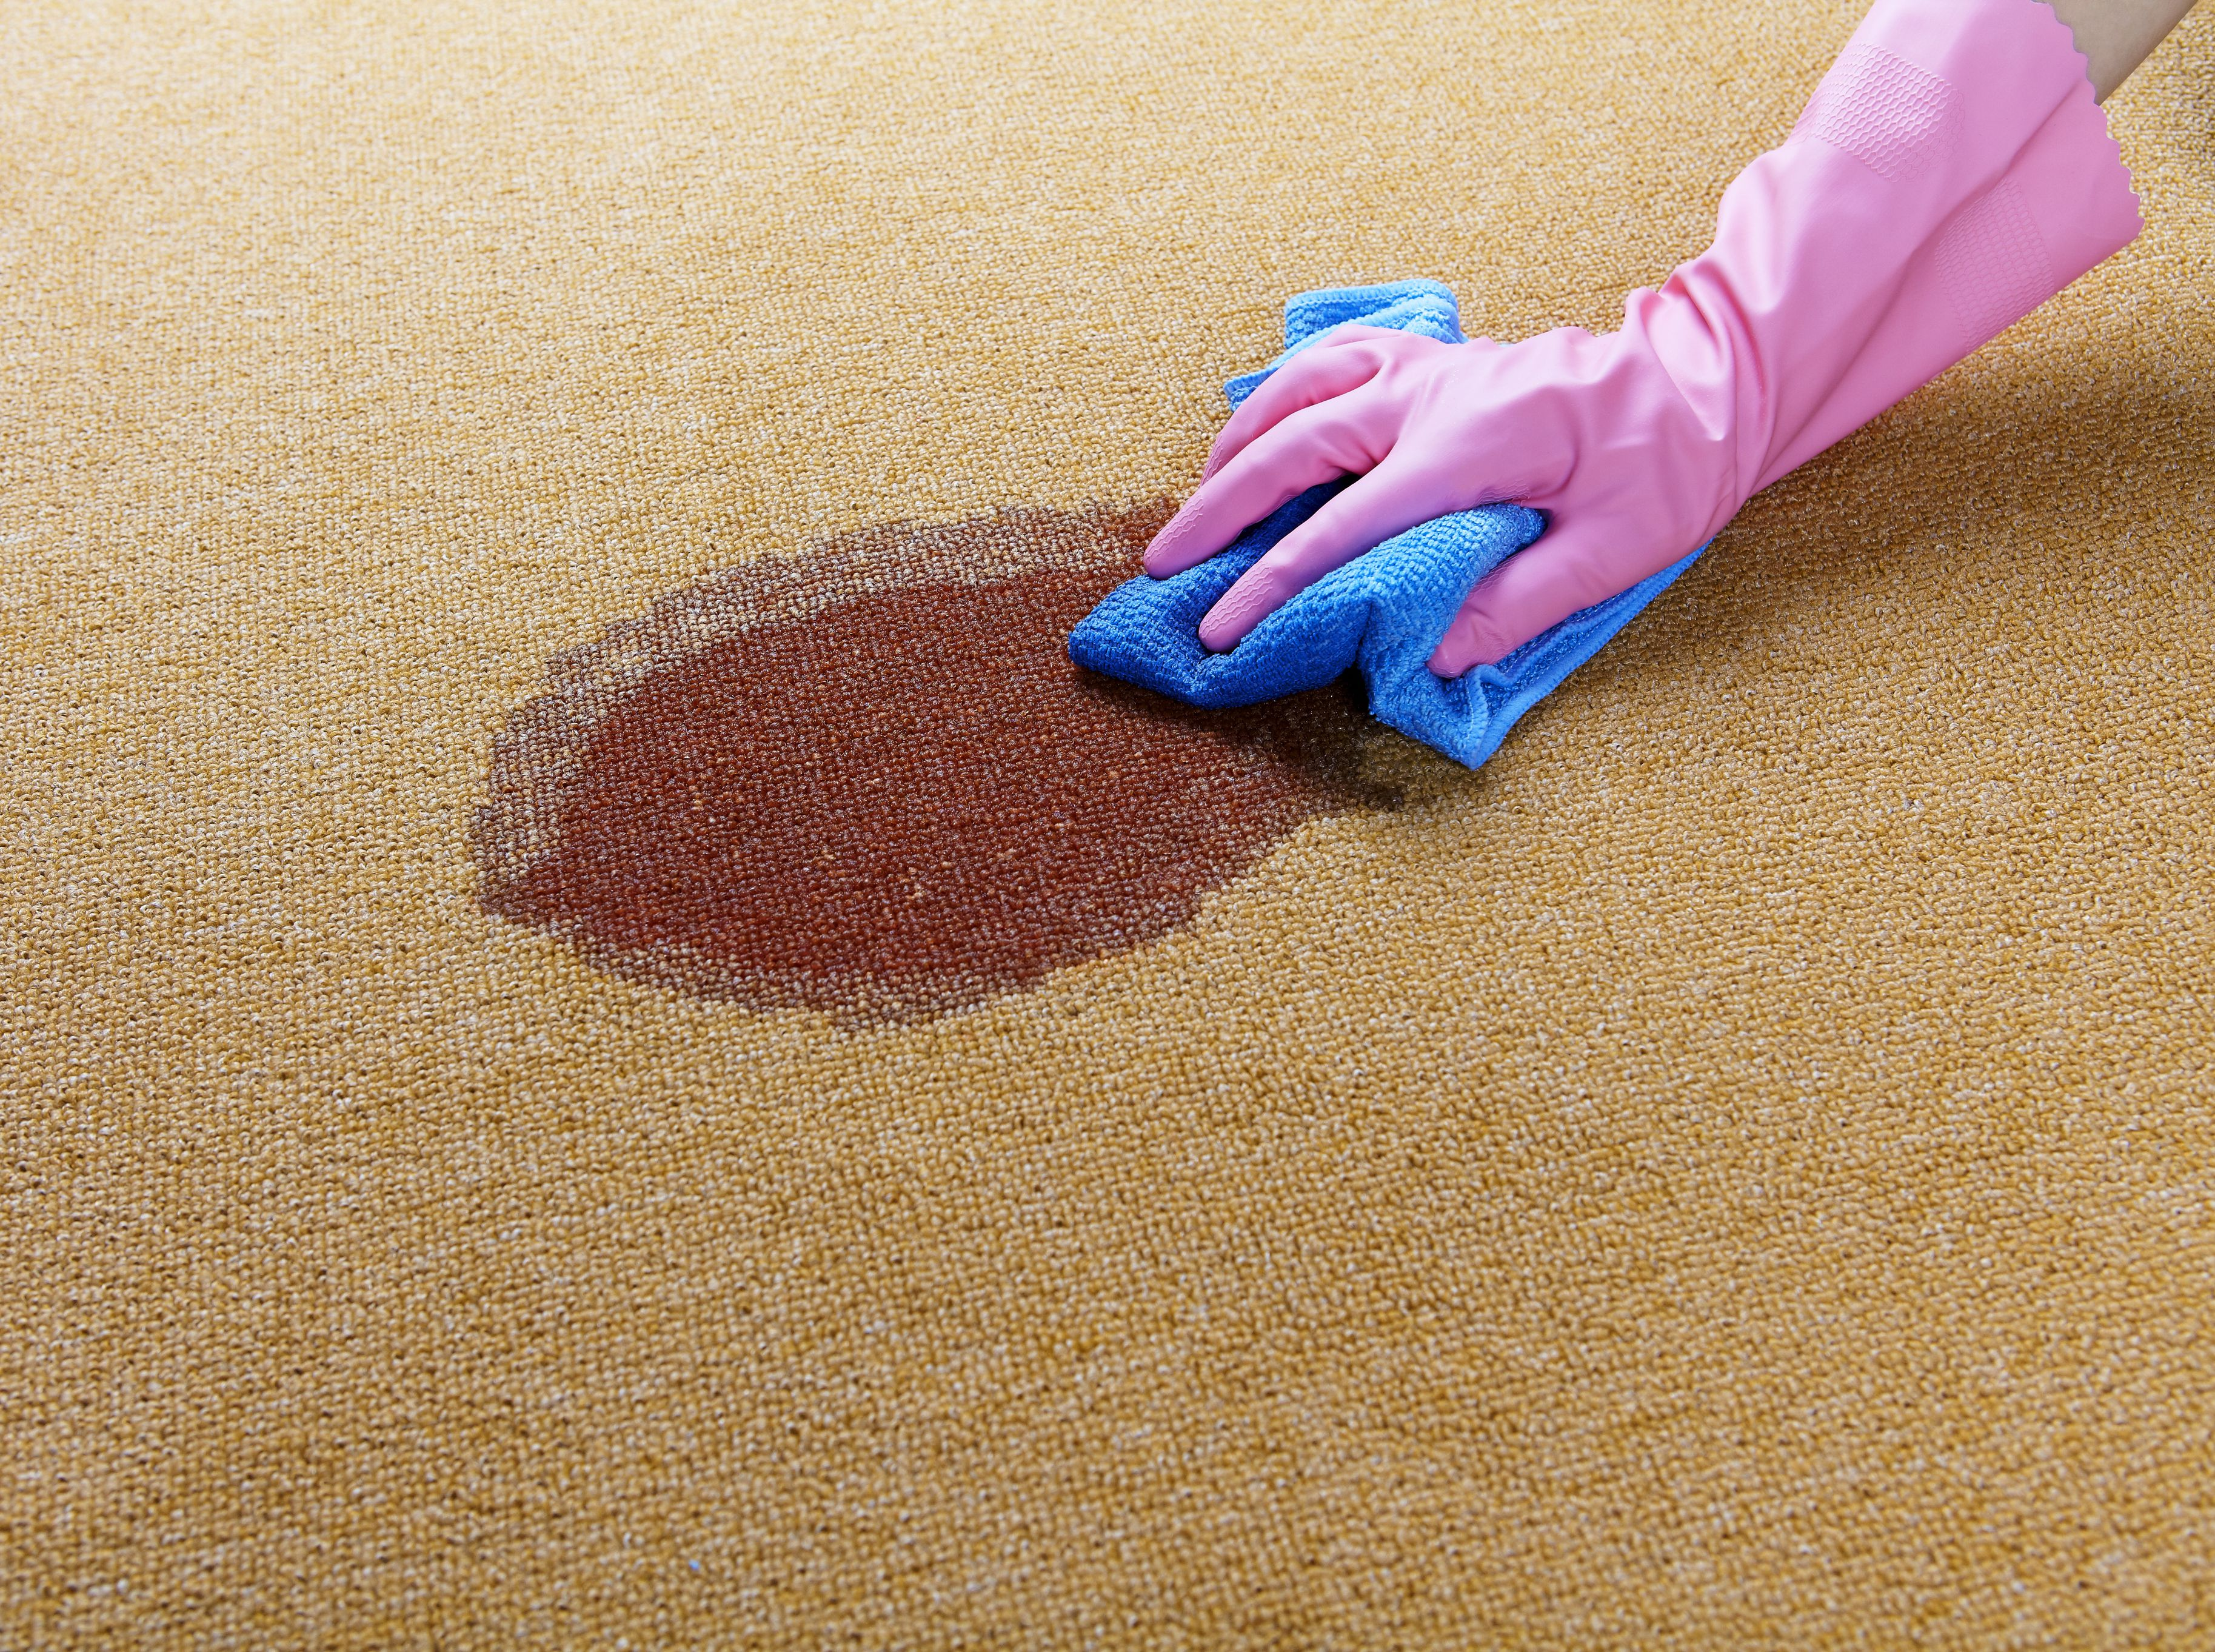 What is the best carpet to buy - The 8 Best Carpet Stain Removers To Buy In 2017